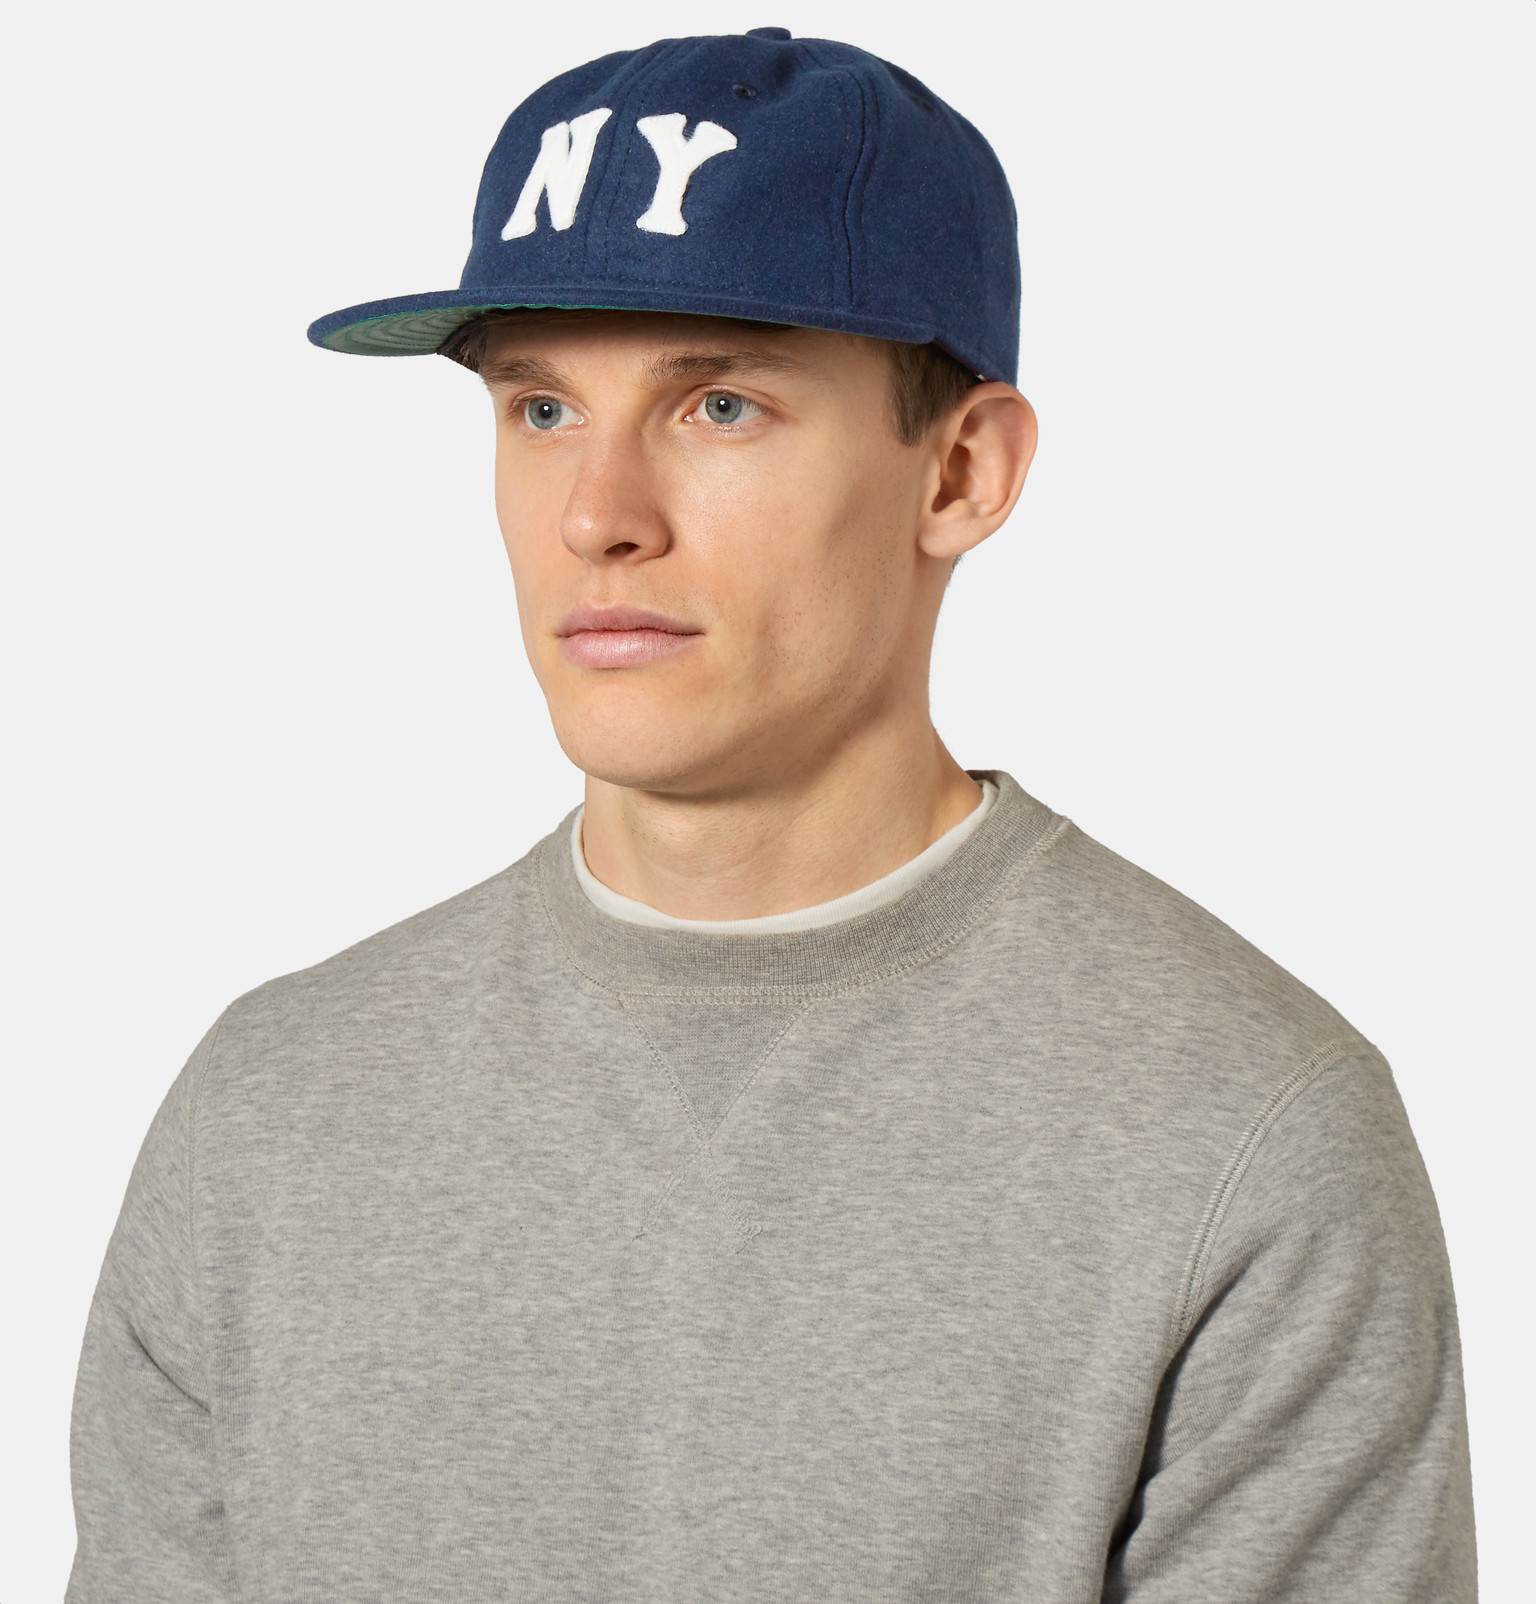 Ebbets Field Flannels New York Black Yankees 1936 Wool-broadcloth Baseball  Cap in Blue for Men - Lyst ad19e5600e3